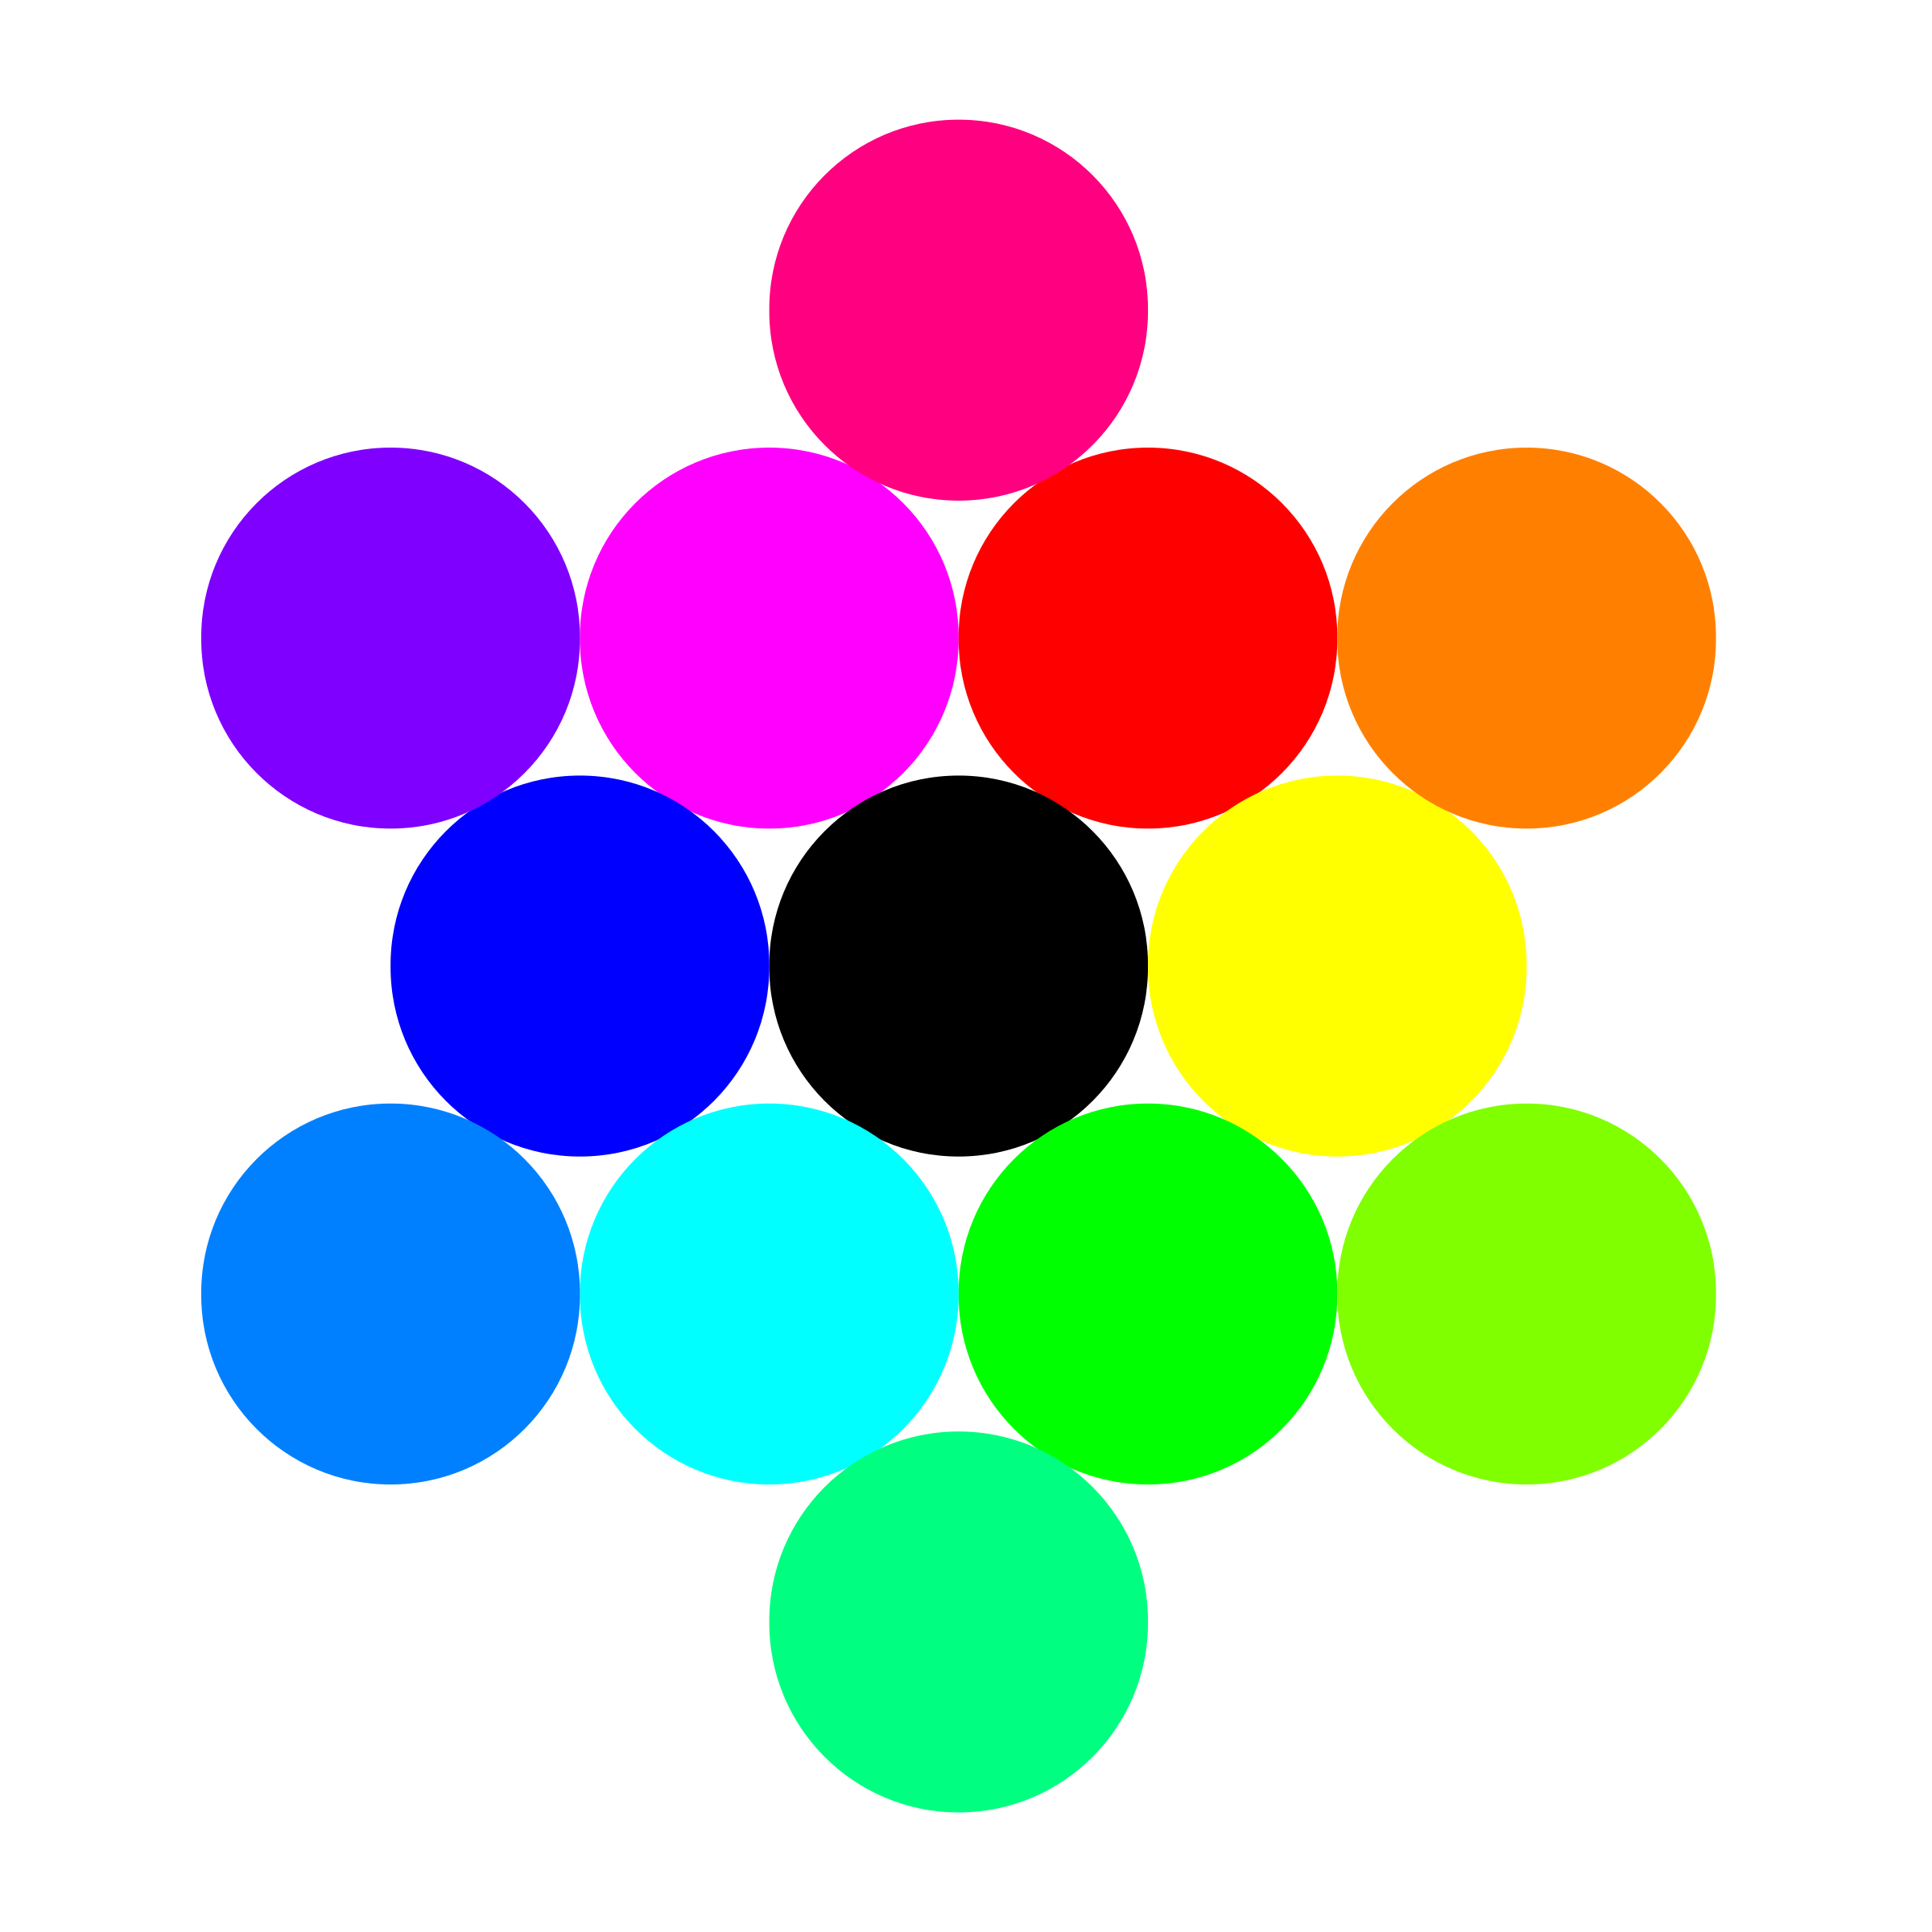 13 circles rainbow by 10binary